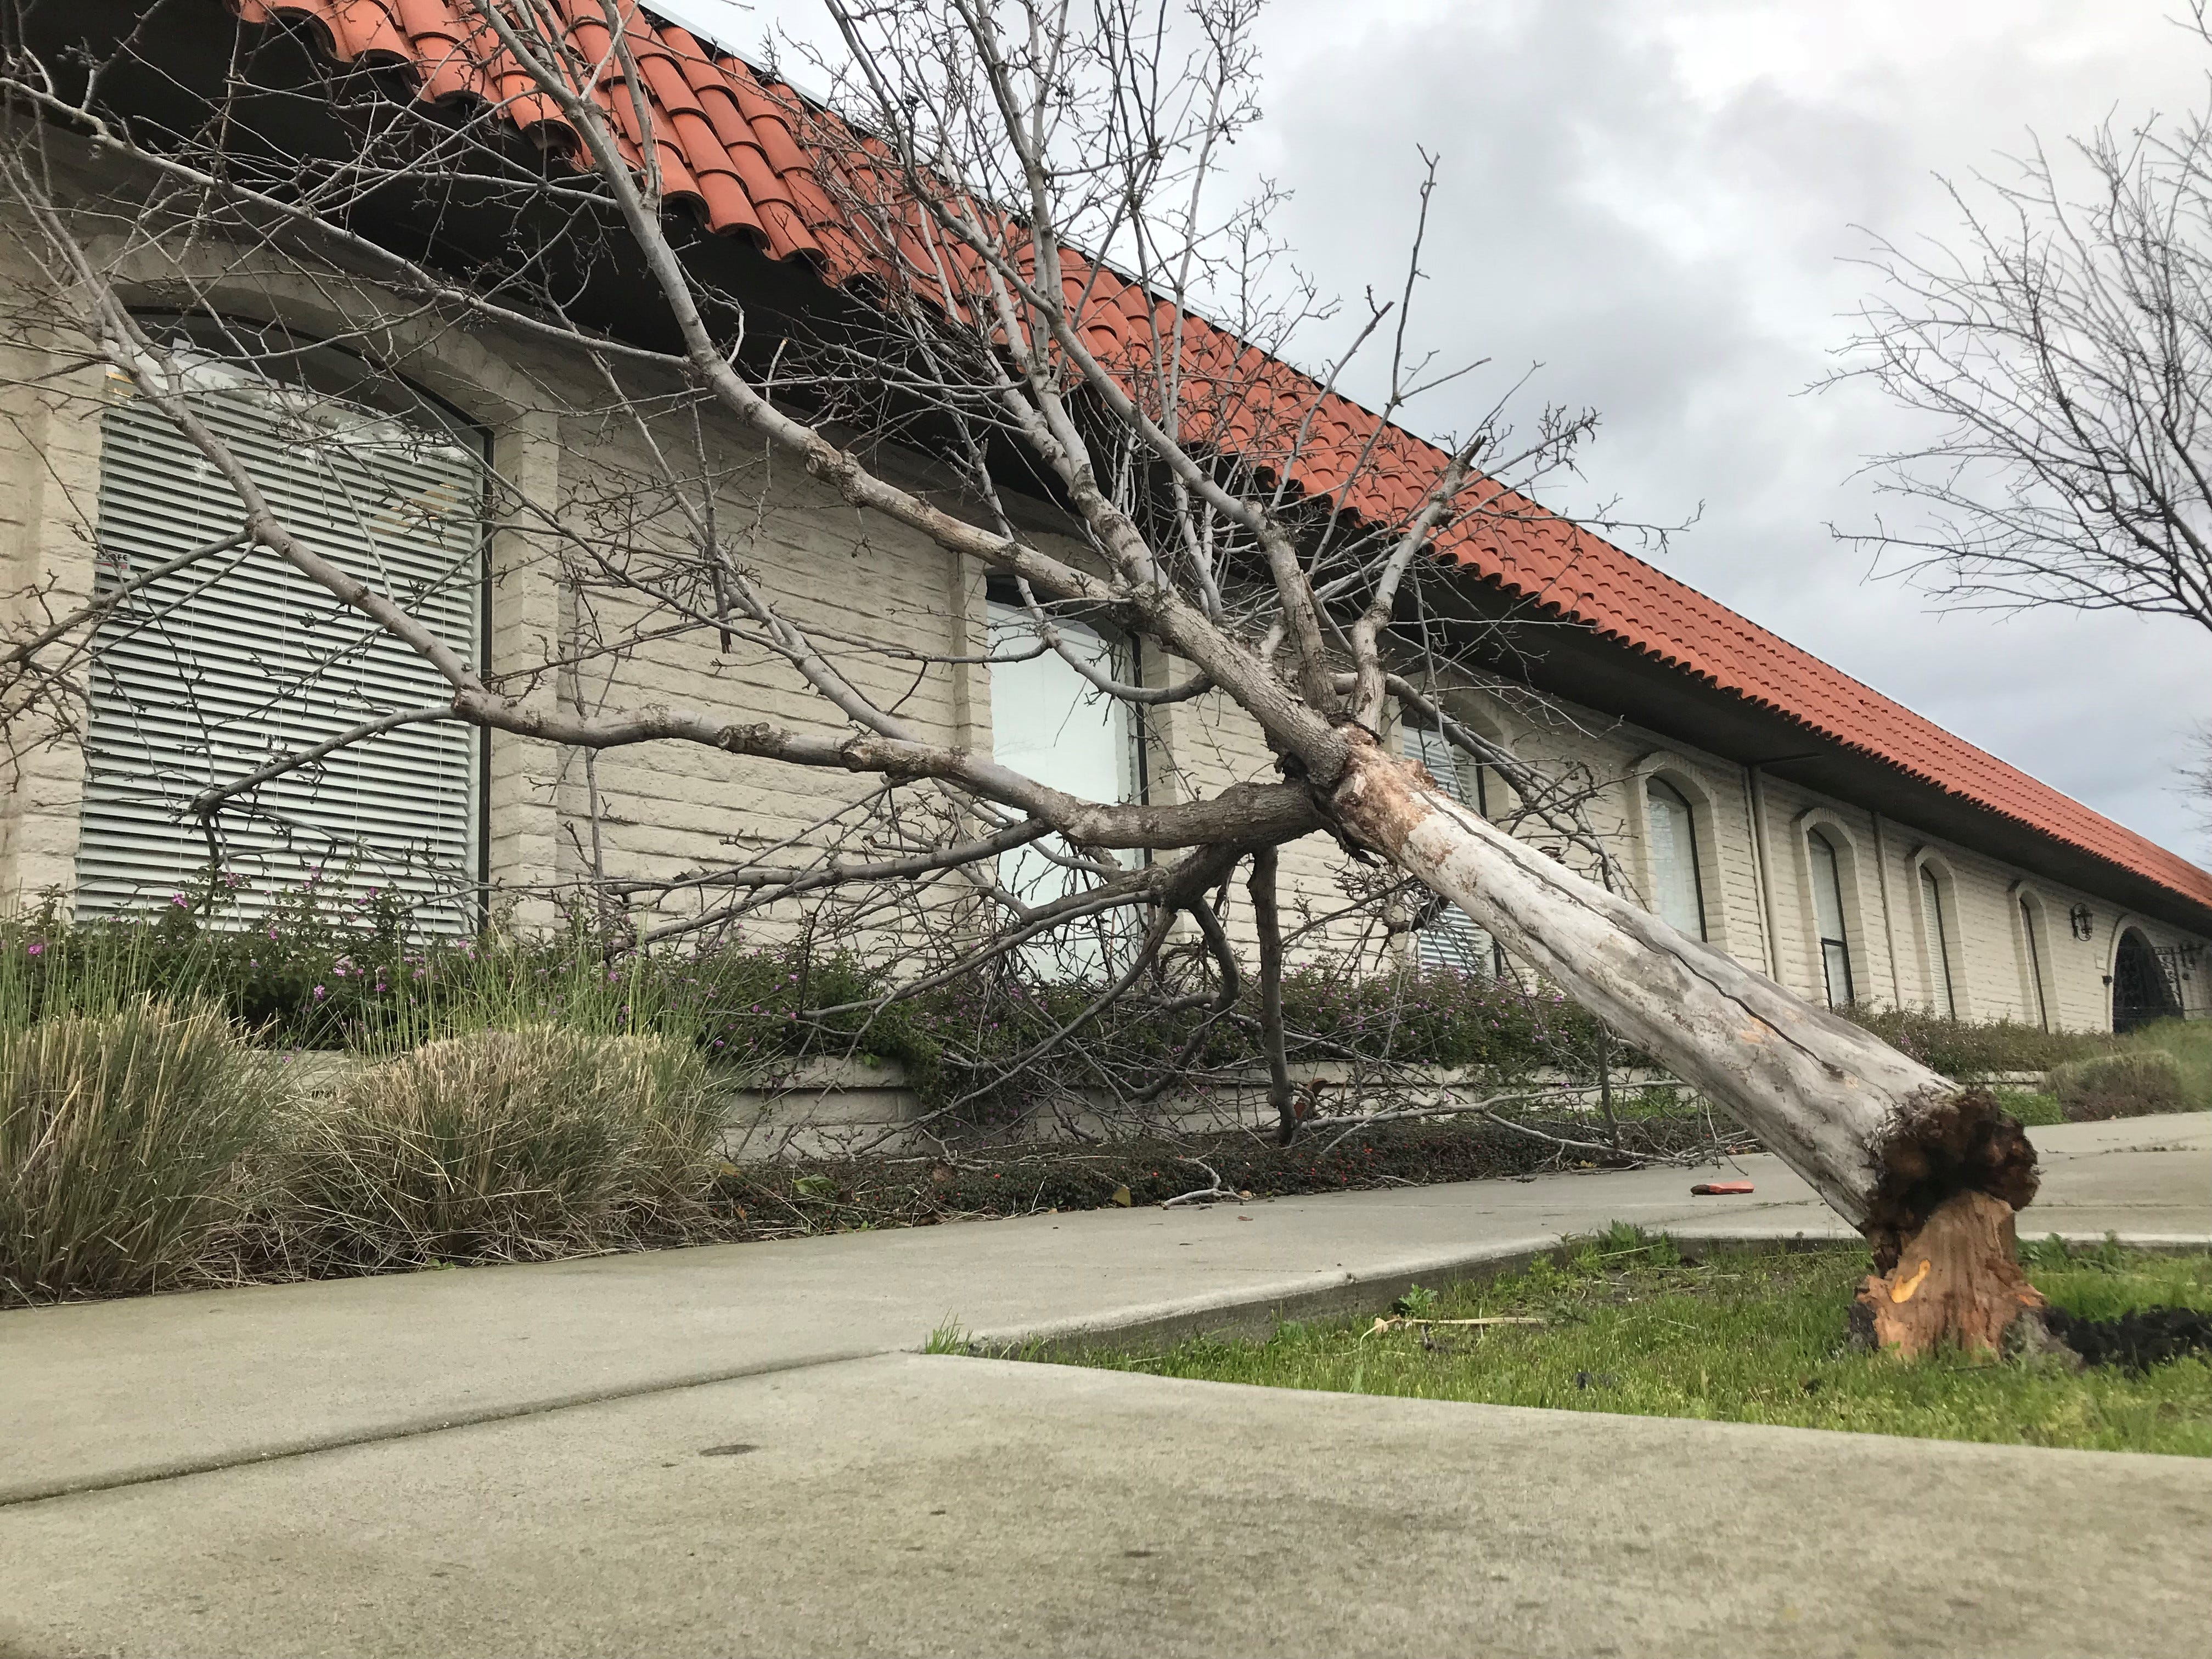 A tree knocked over by heavy winds near West Gabilan and Church streets Feb. 13, 2019.